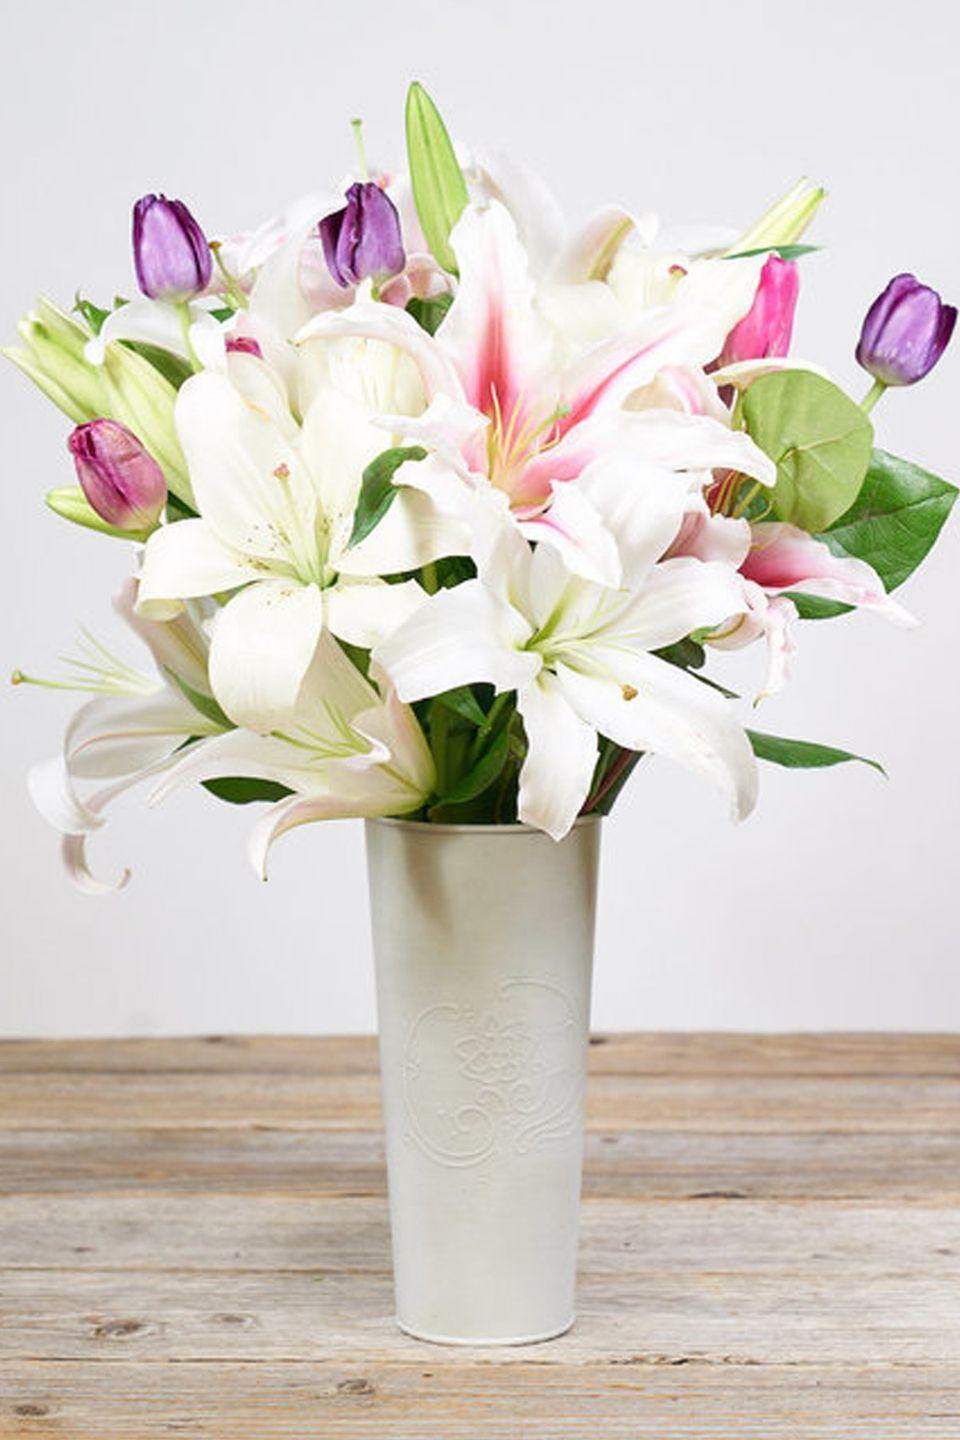 """<p>Easter lilies are some of the most common flowers used to celebrate this holiday and this arrangement pairs them with pink and purple tulips to keep them from feeling boring.<strong><em><br></em></strong></p><p><strong><em>West Elm Baro Vase, $35</em></strong> <a class=""""link rapid-noclick-resp"""" href=""""https://go.redirectingat.com?id=74968X1596630&url=https%3A%2F%2Fwww.westelm.com%2Fproducts%2Fbarro-vases-d7627%2F%3Fpkey%3Dcvase&sref=https%3A%2F%2Fwww.housebeautiful.com%2Fentertaining%2Fflower-arrangements%2Fg19409803%2Feaster-flower-arrangements%2F"""" rel=""""nofollow noopener"""" target=""""_blank"""" data-ylk=""""slk:BUY NOW"""">BUY NOW</a></p>"""